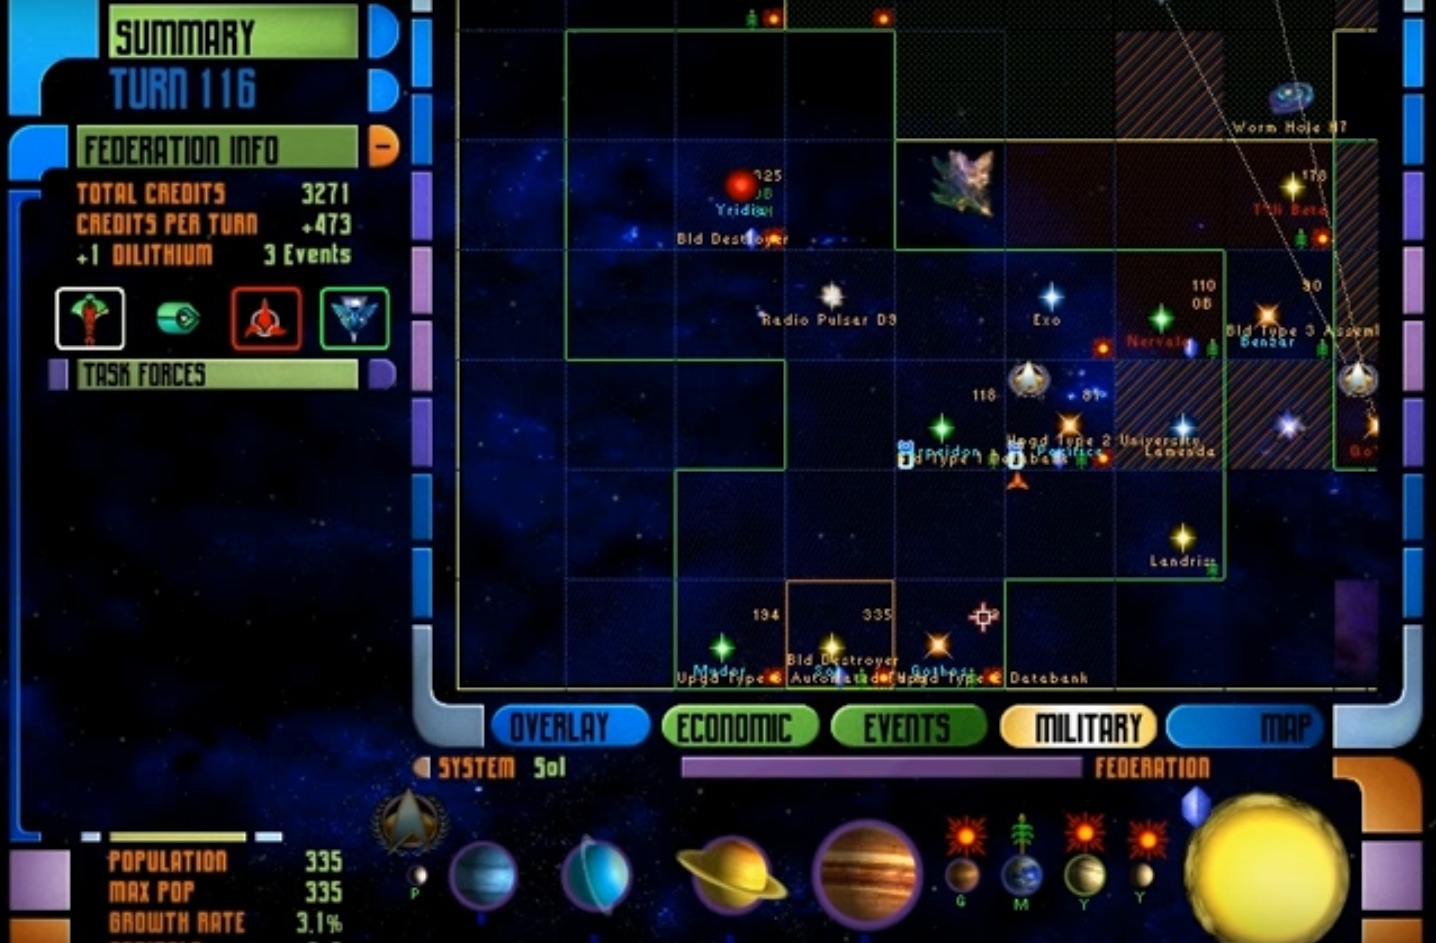 Star Trek: Birth of the Federation. Image Credit: Microprose/Hasbro. Image captured from: https://youtu.be/Fy3RnVJbZMs.